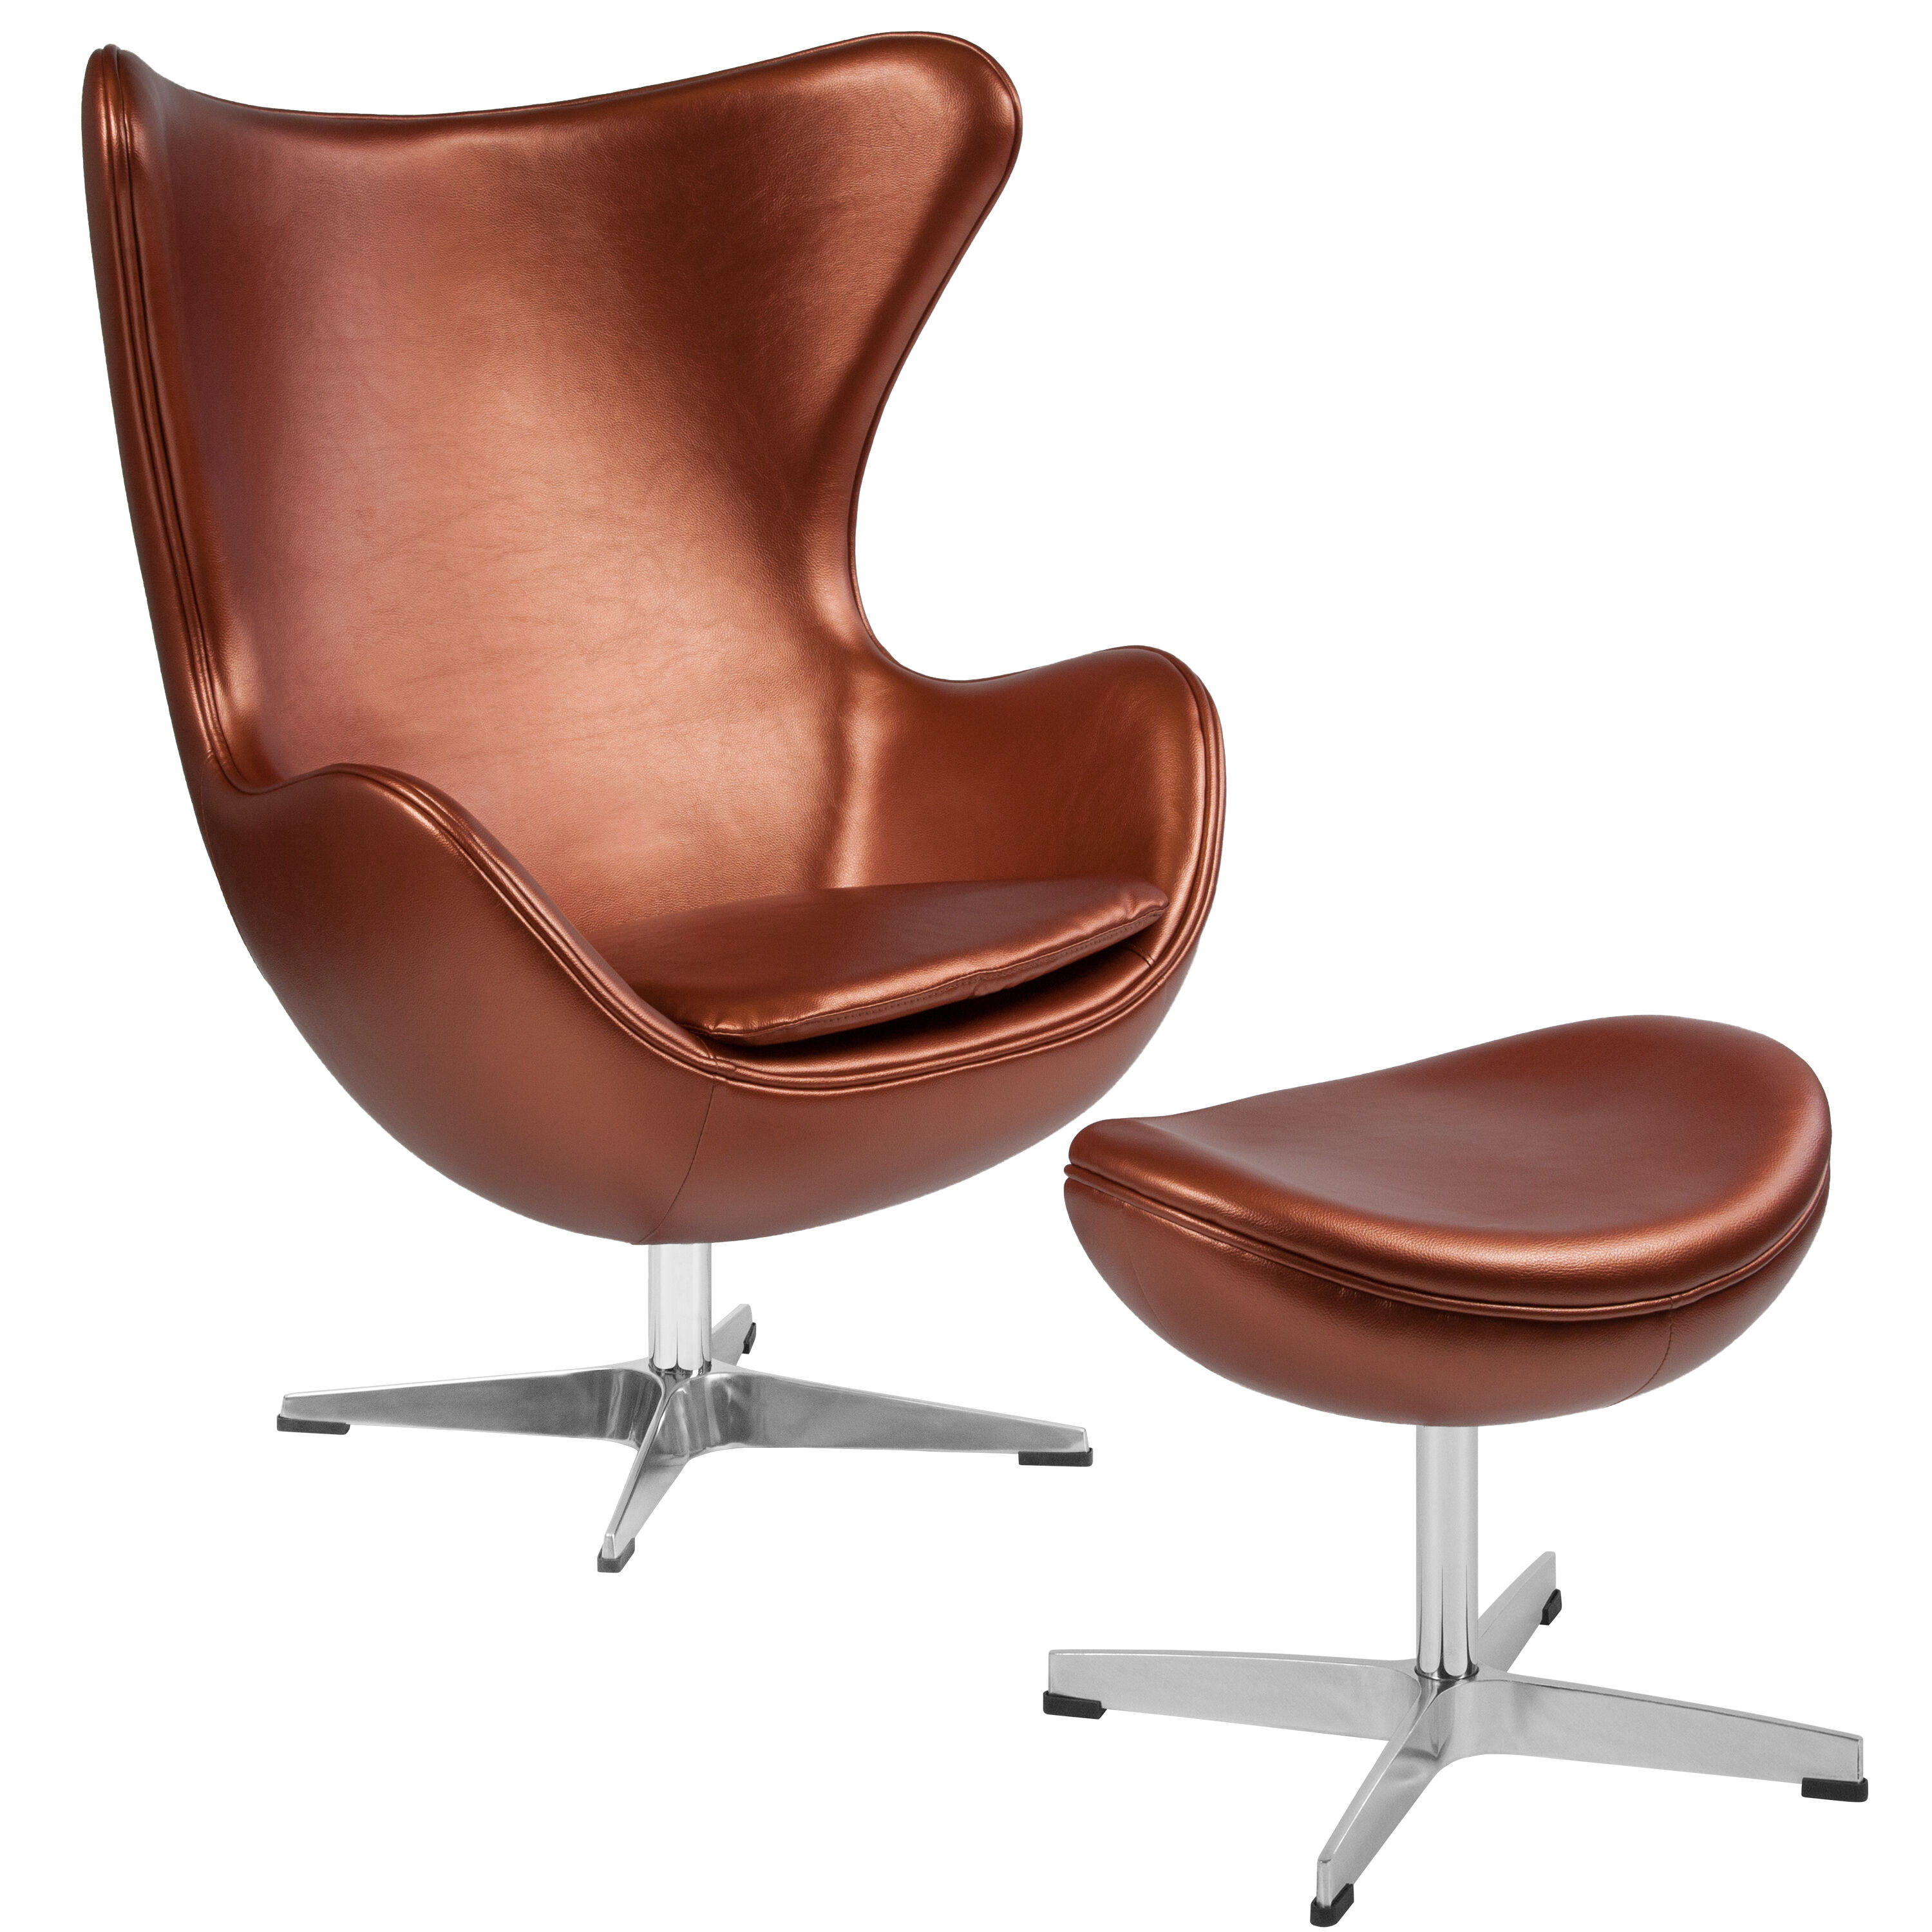 Egg Chairs For Sale Cheap Copper Leather Egg Chair Ott Zb 22 Ch Ot Gg